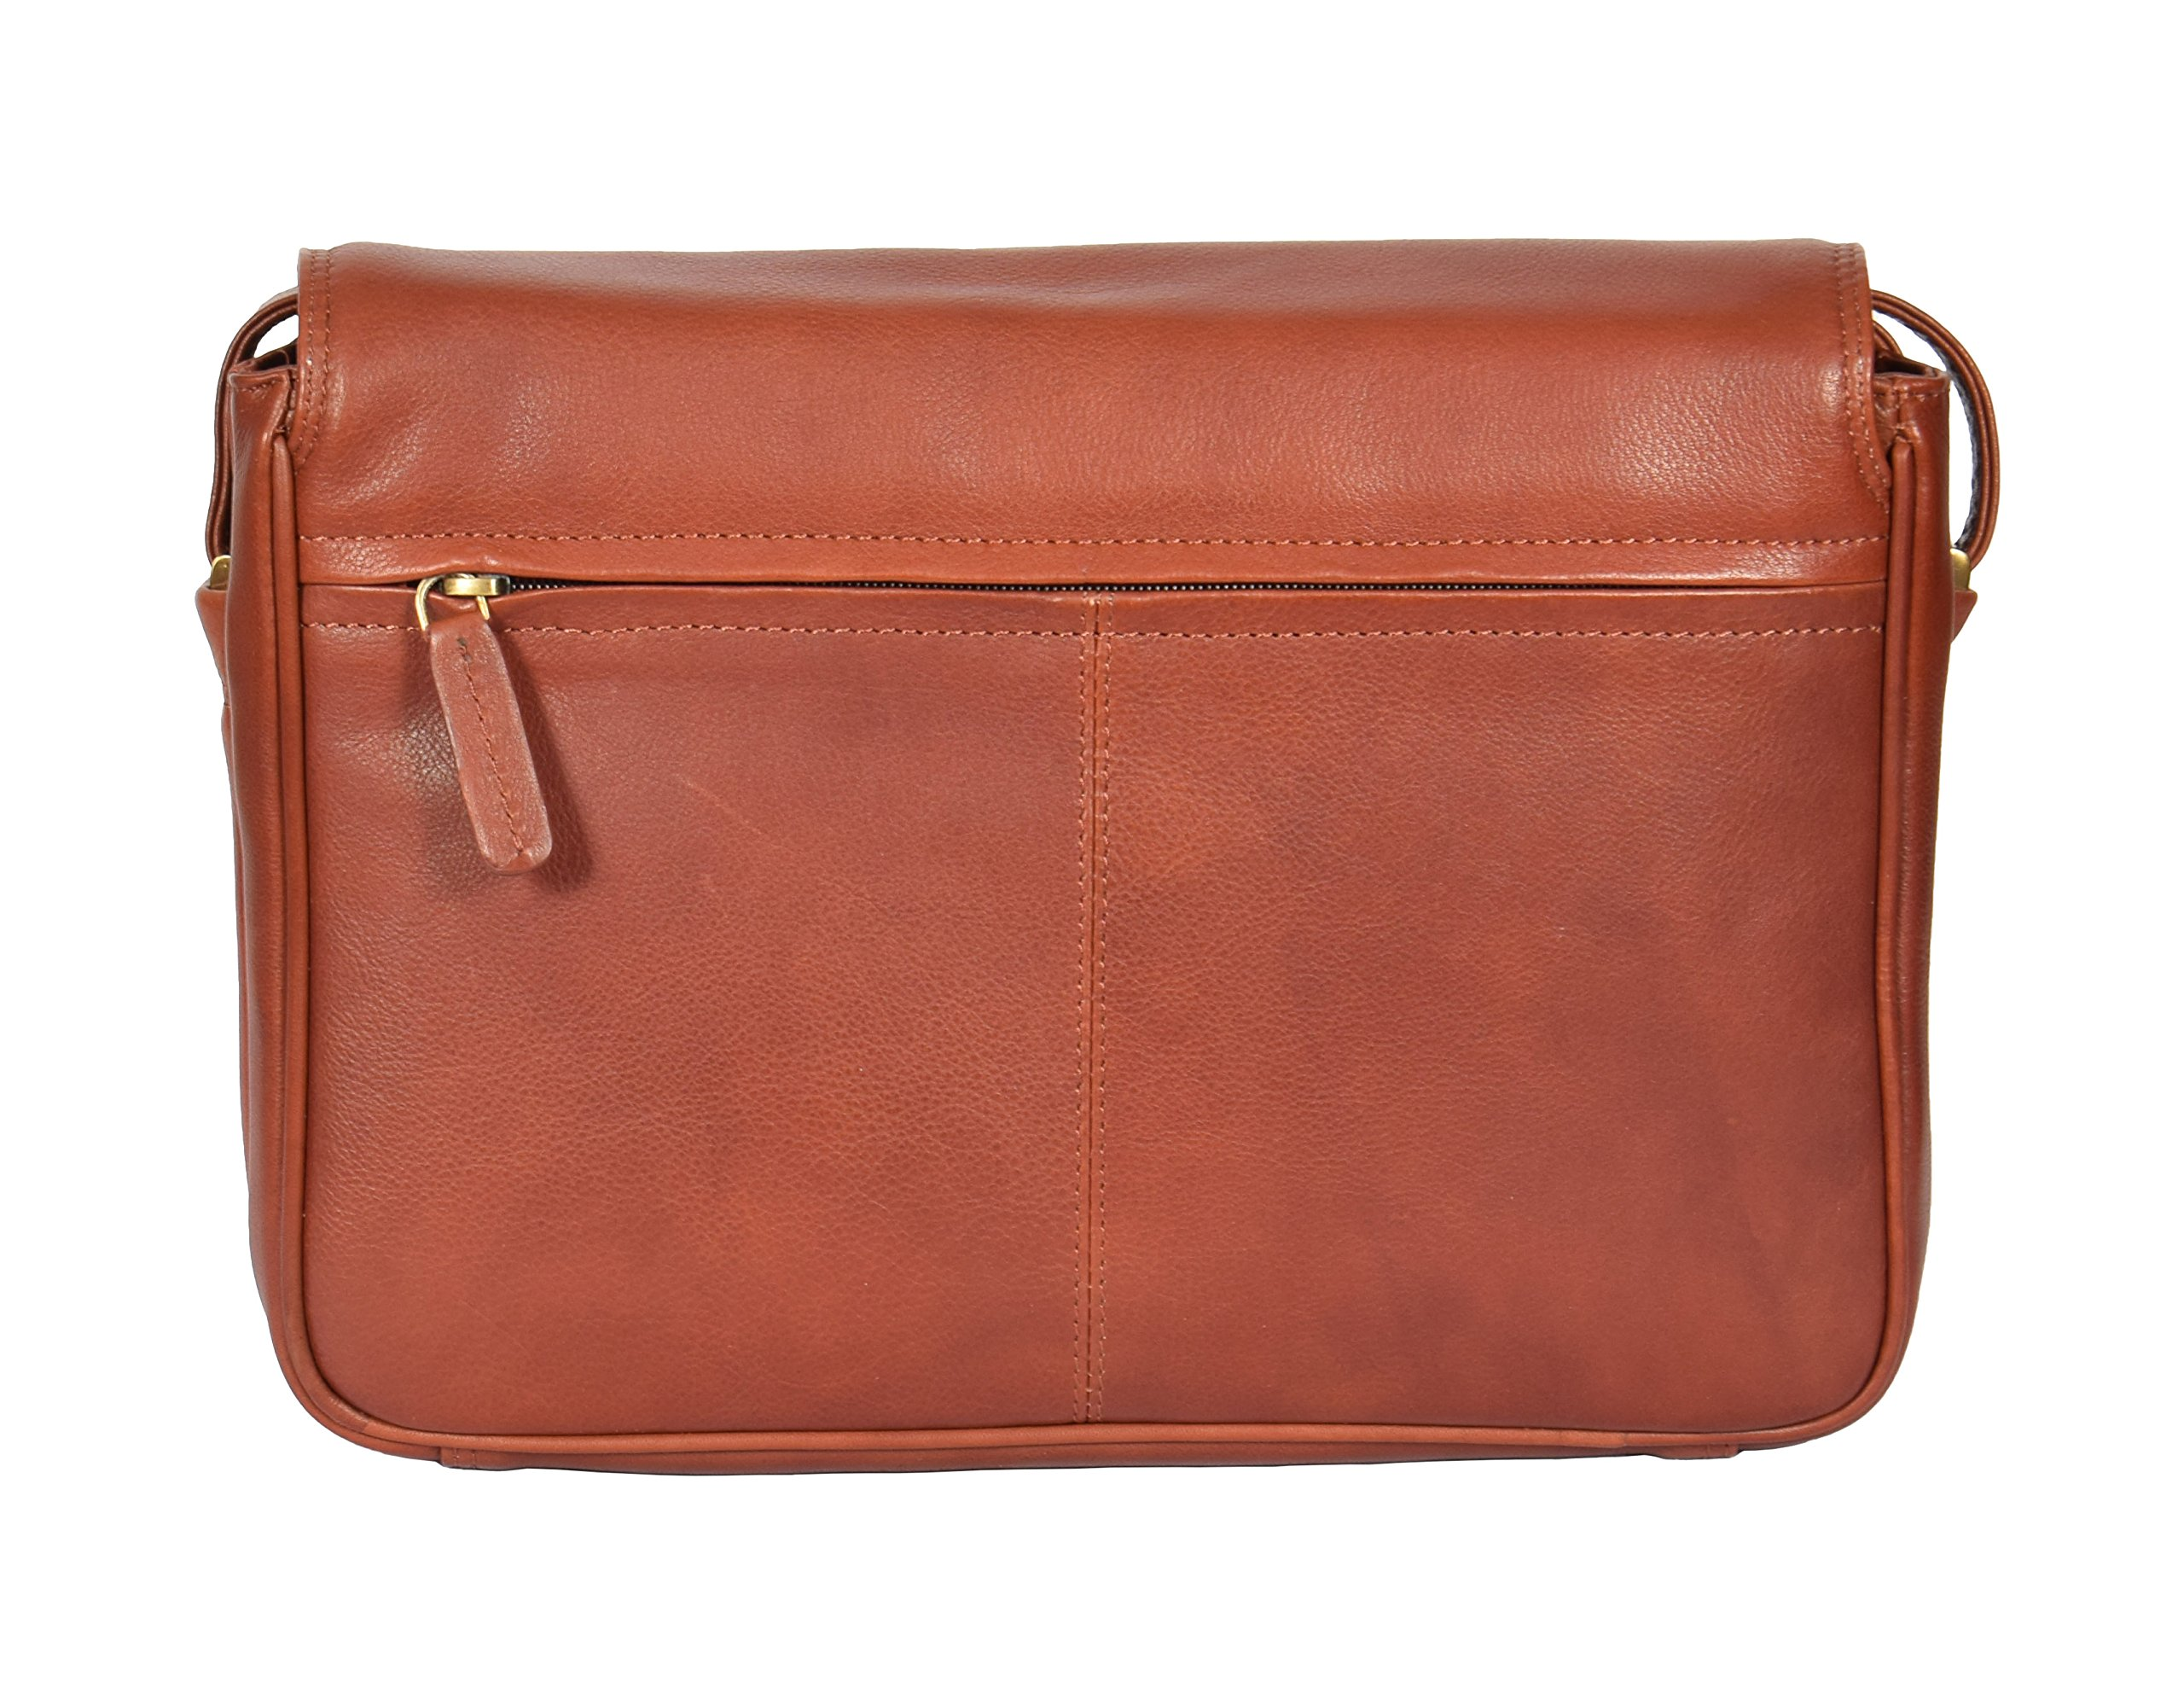 Womens Brown Shoulder Leather Organiser Cross Body Work Messenger Bag A190 by A1 FASHION GOODS (Image #4)